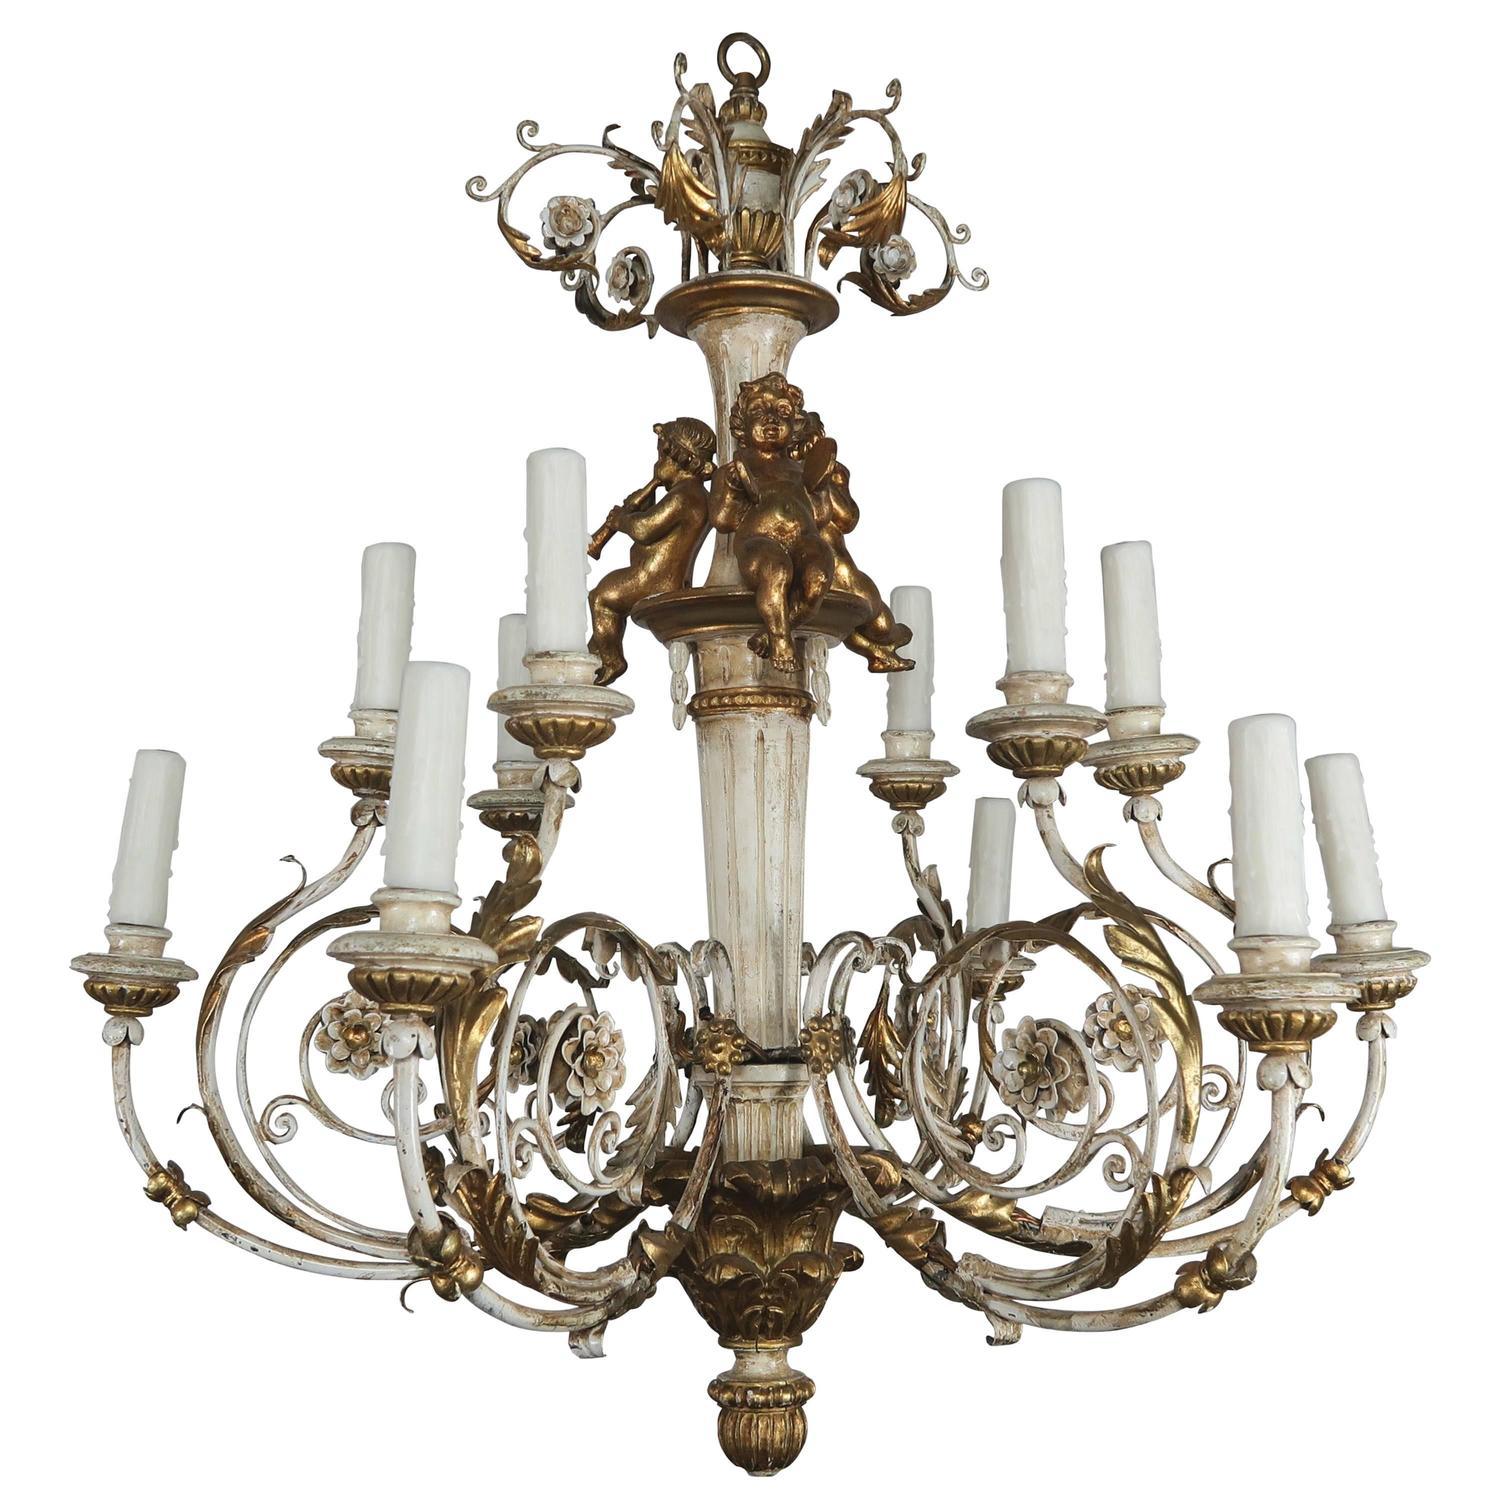 Italian Twelve Light Rococo Style Cherub Chandelier For Sale at